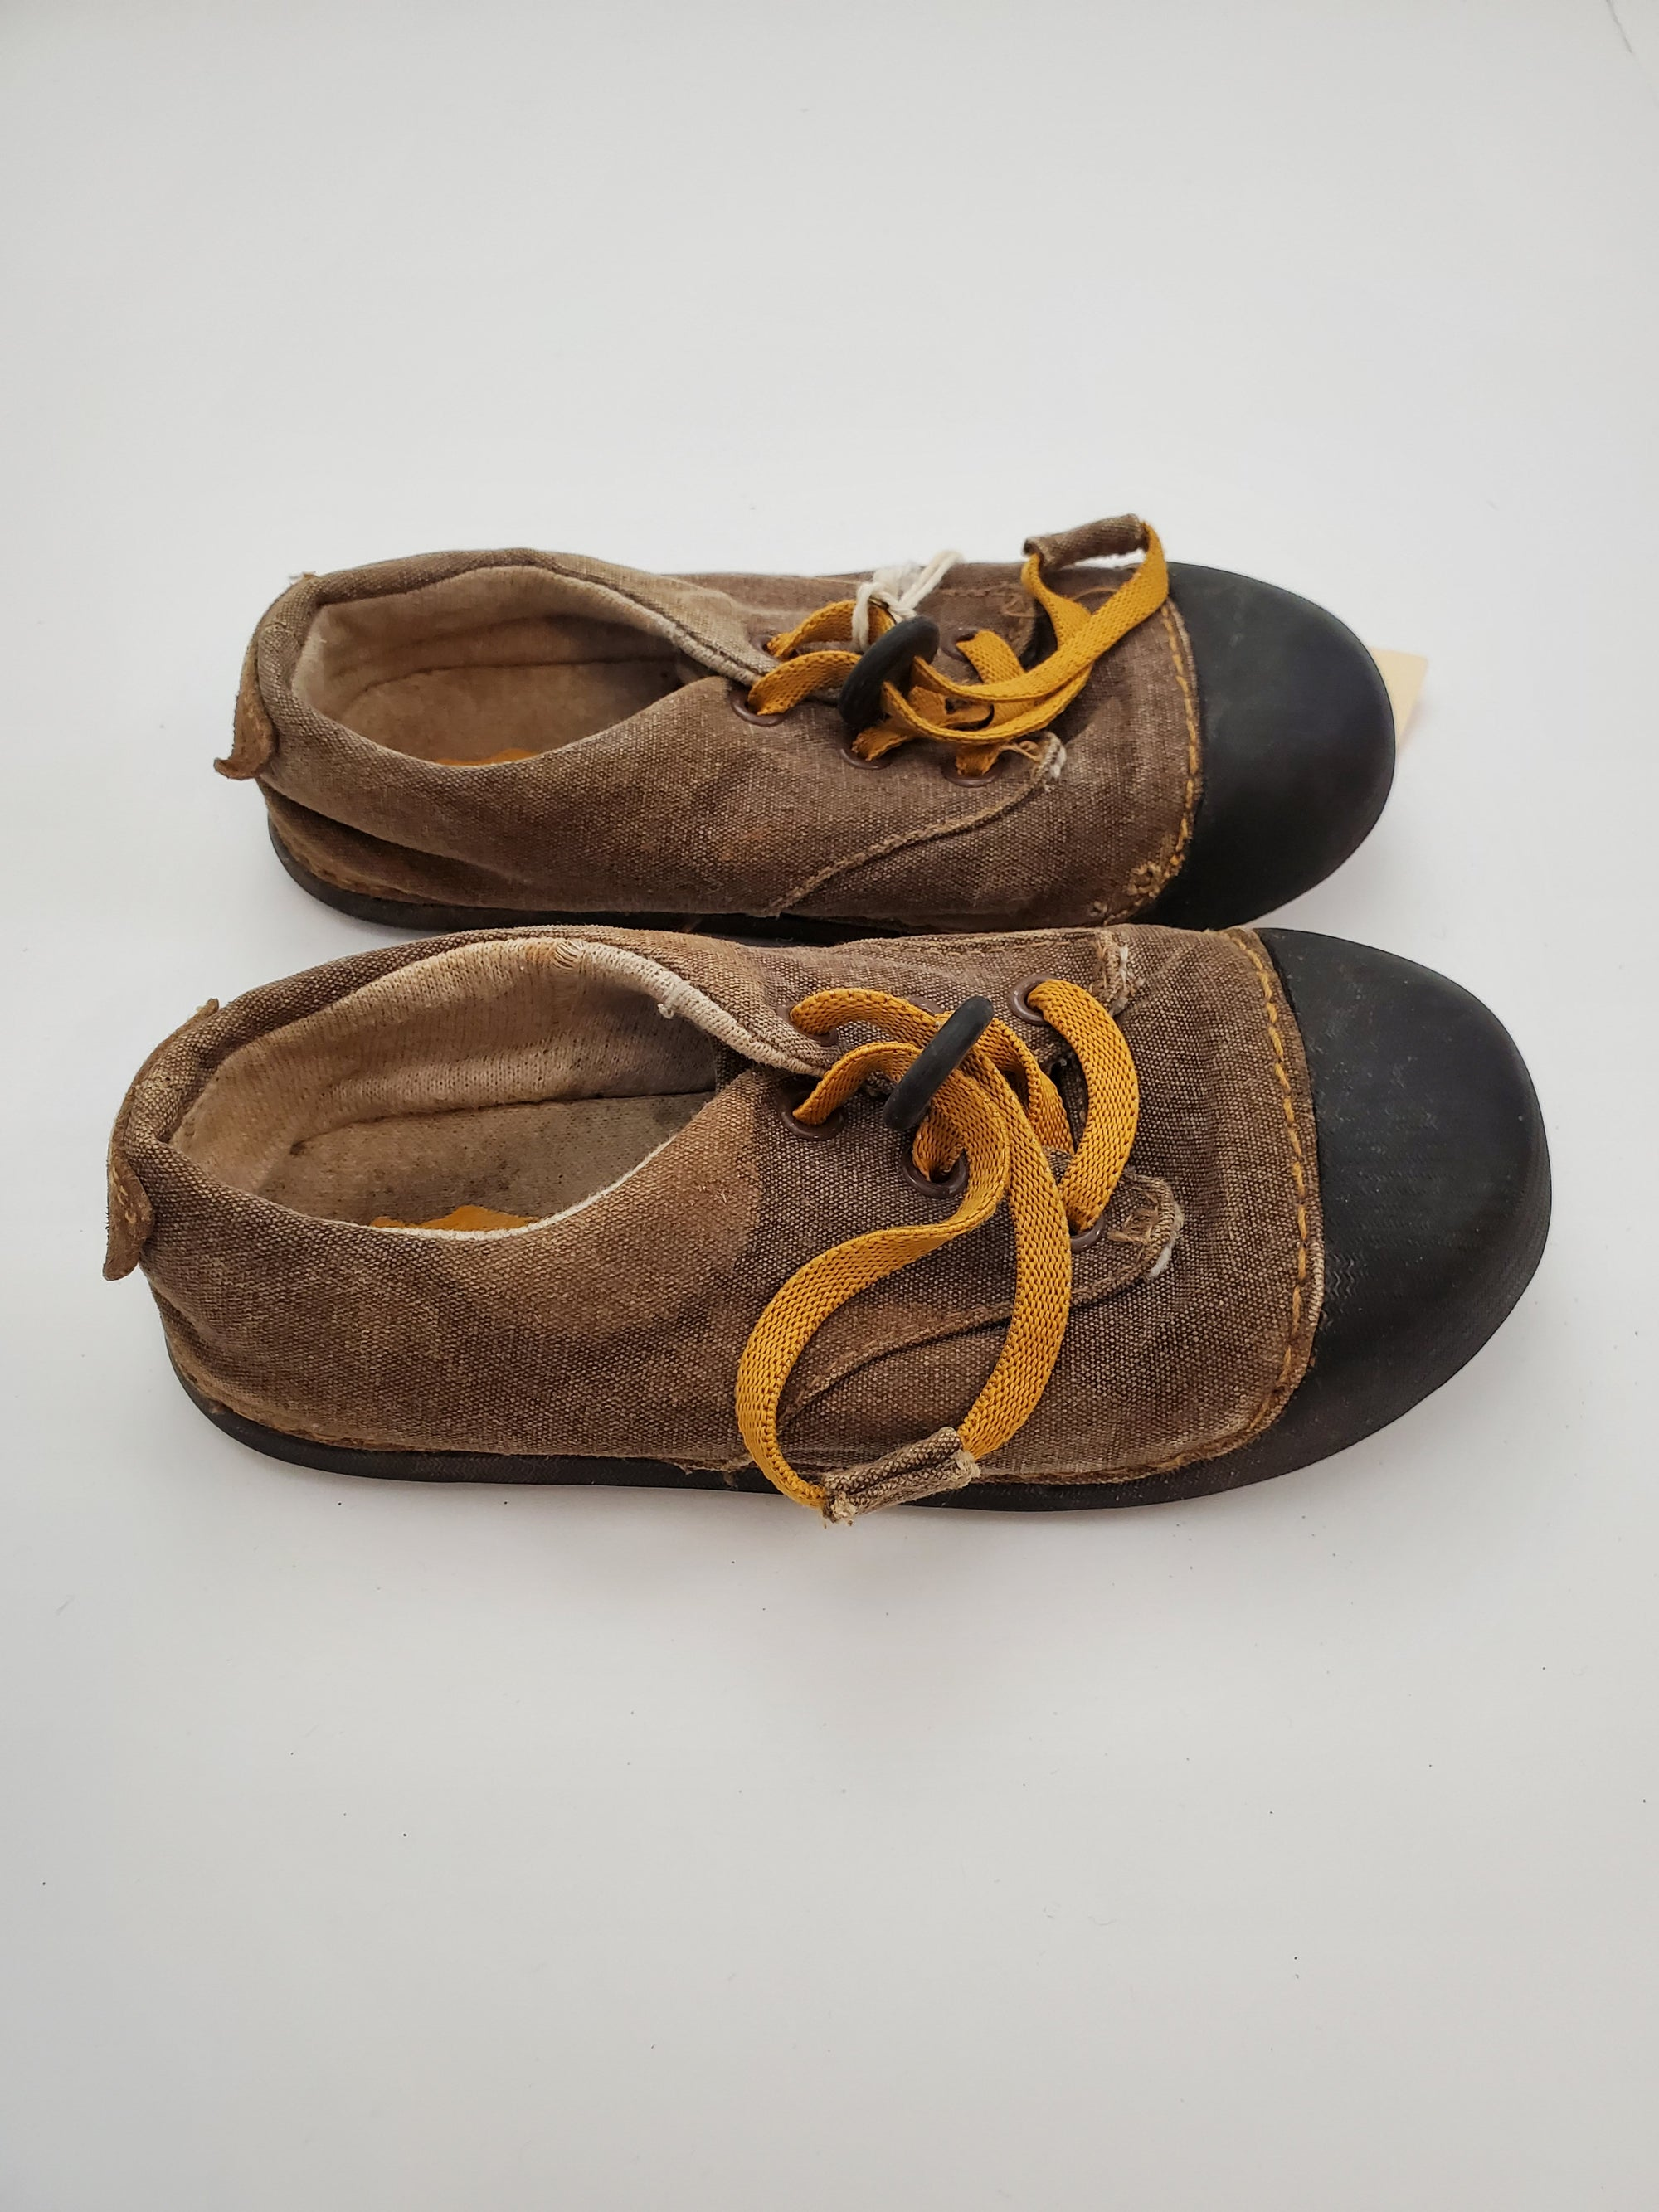 C10 Simple Canvas Shoes - Tan / Black